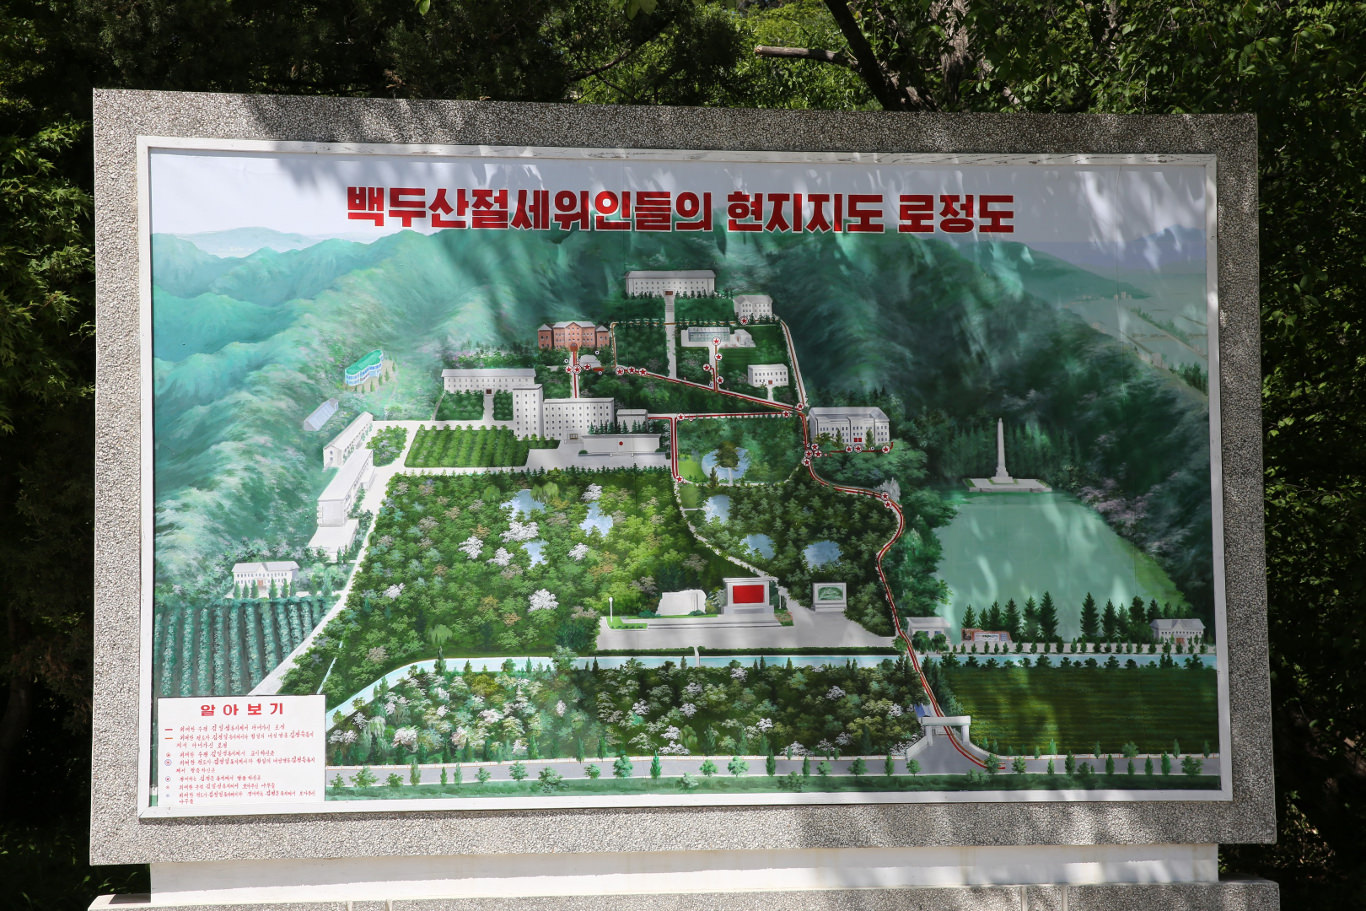 Map of the Wonsan University of Agriculture in North Korea (DPRK). Trip arranged by KTG Tours